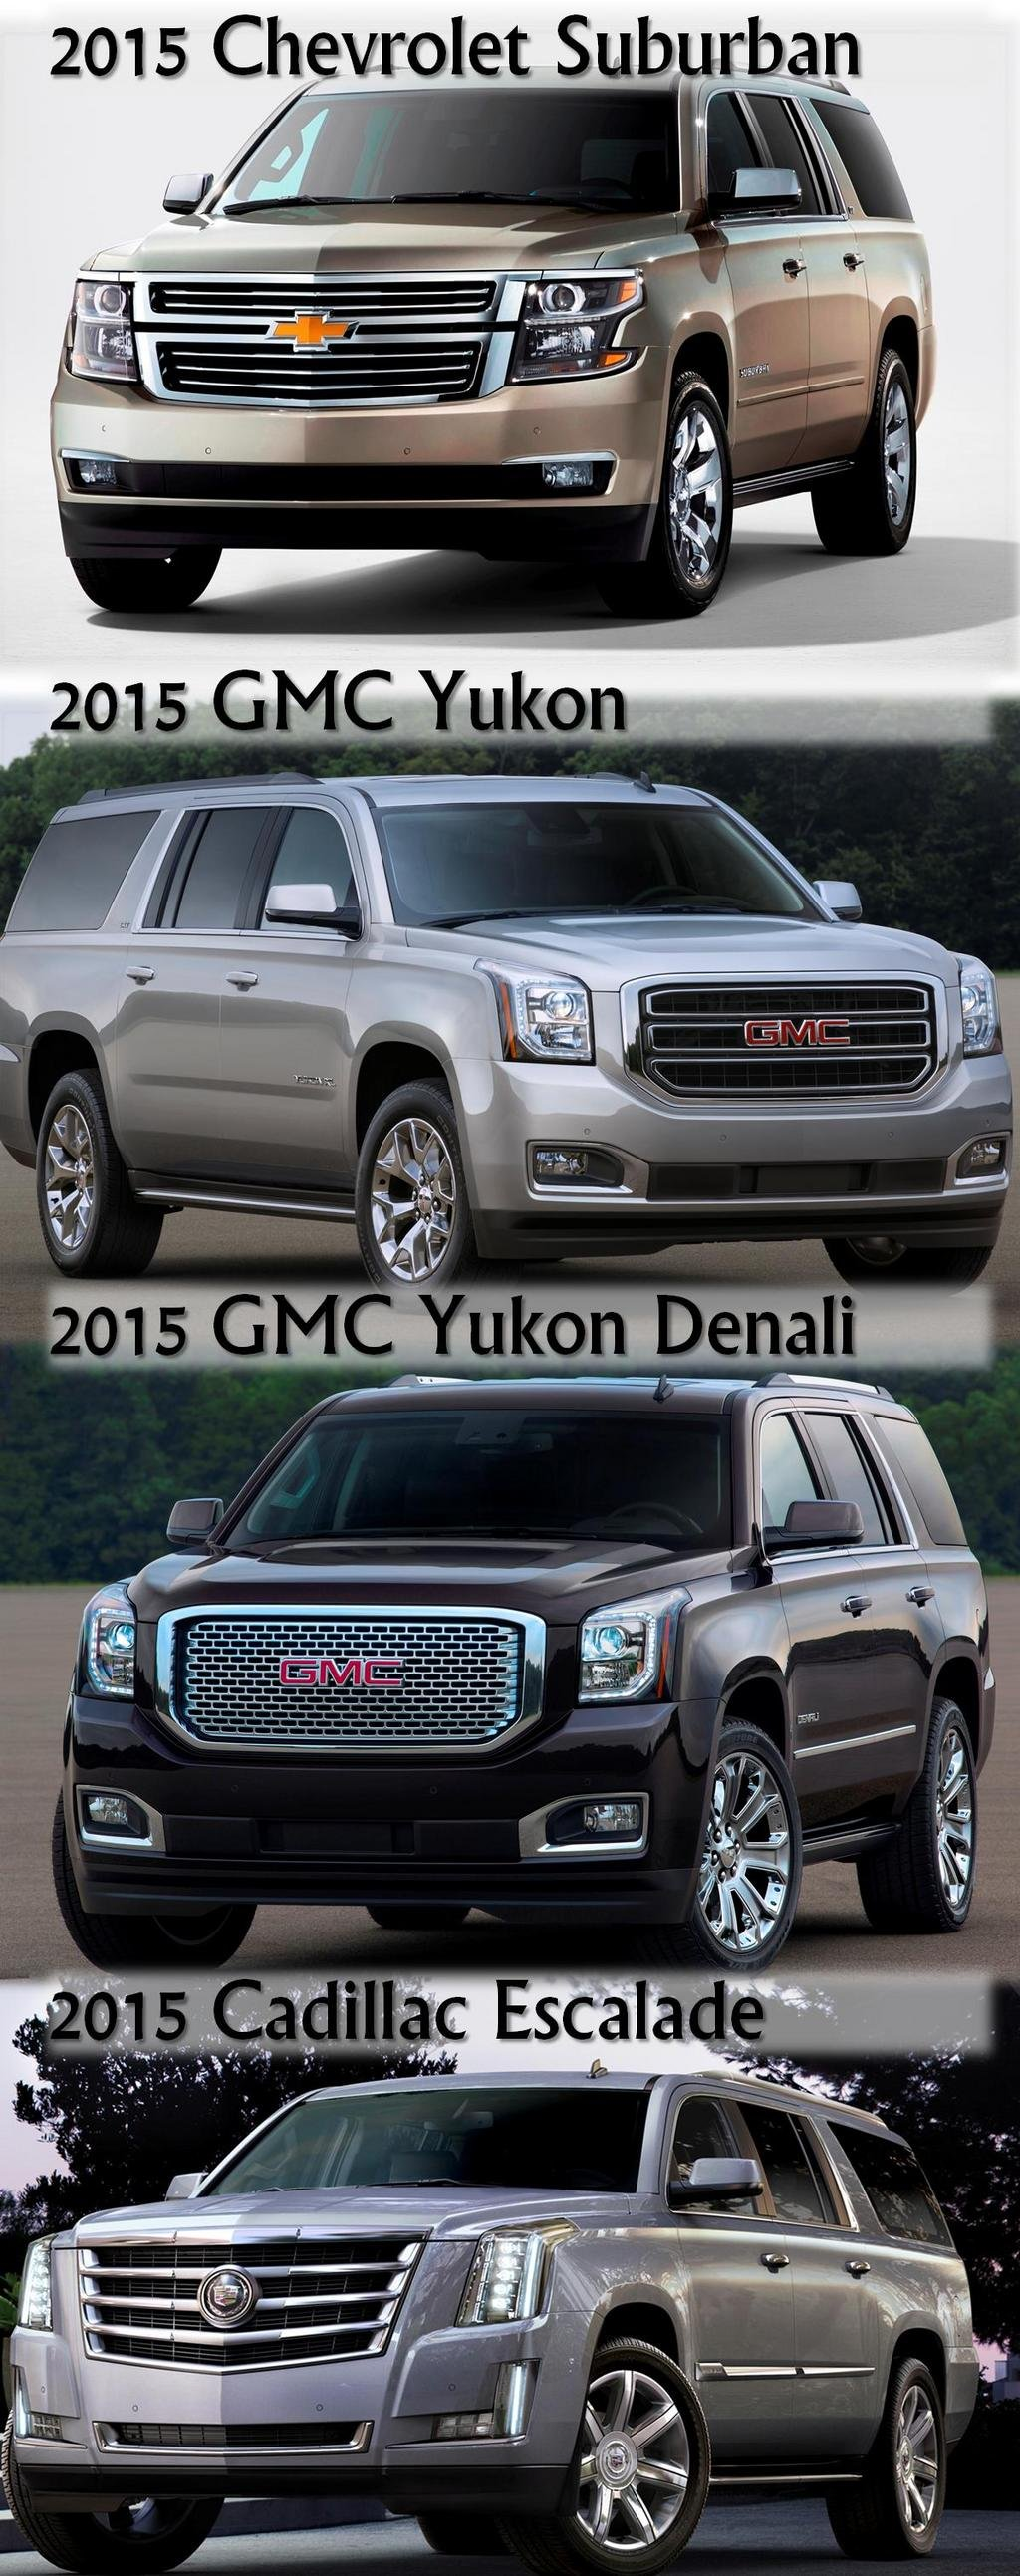 2015 gmc sierra hd dashboard maxabout images pinterest cars gmc vehicles and car interiors